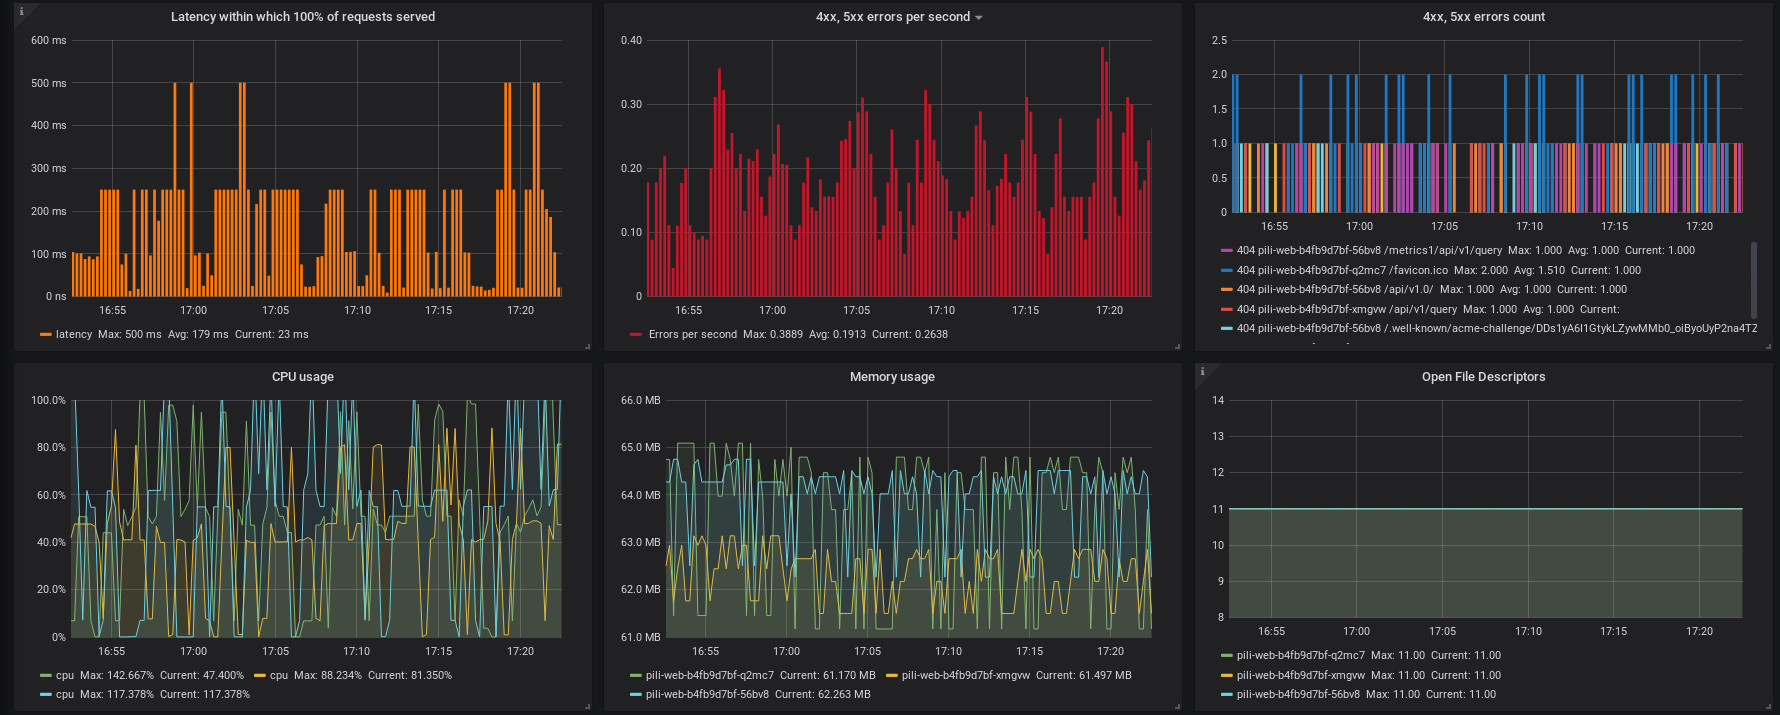 Grfana dashboard: errors and resource usage